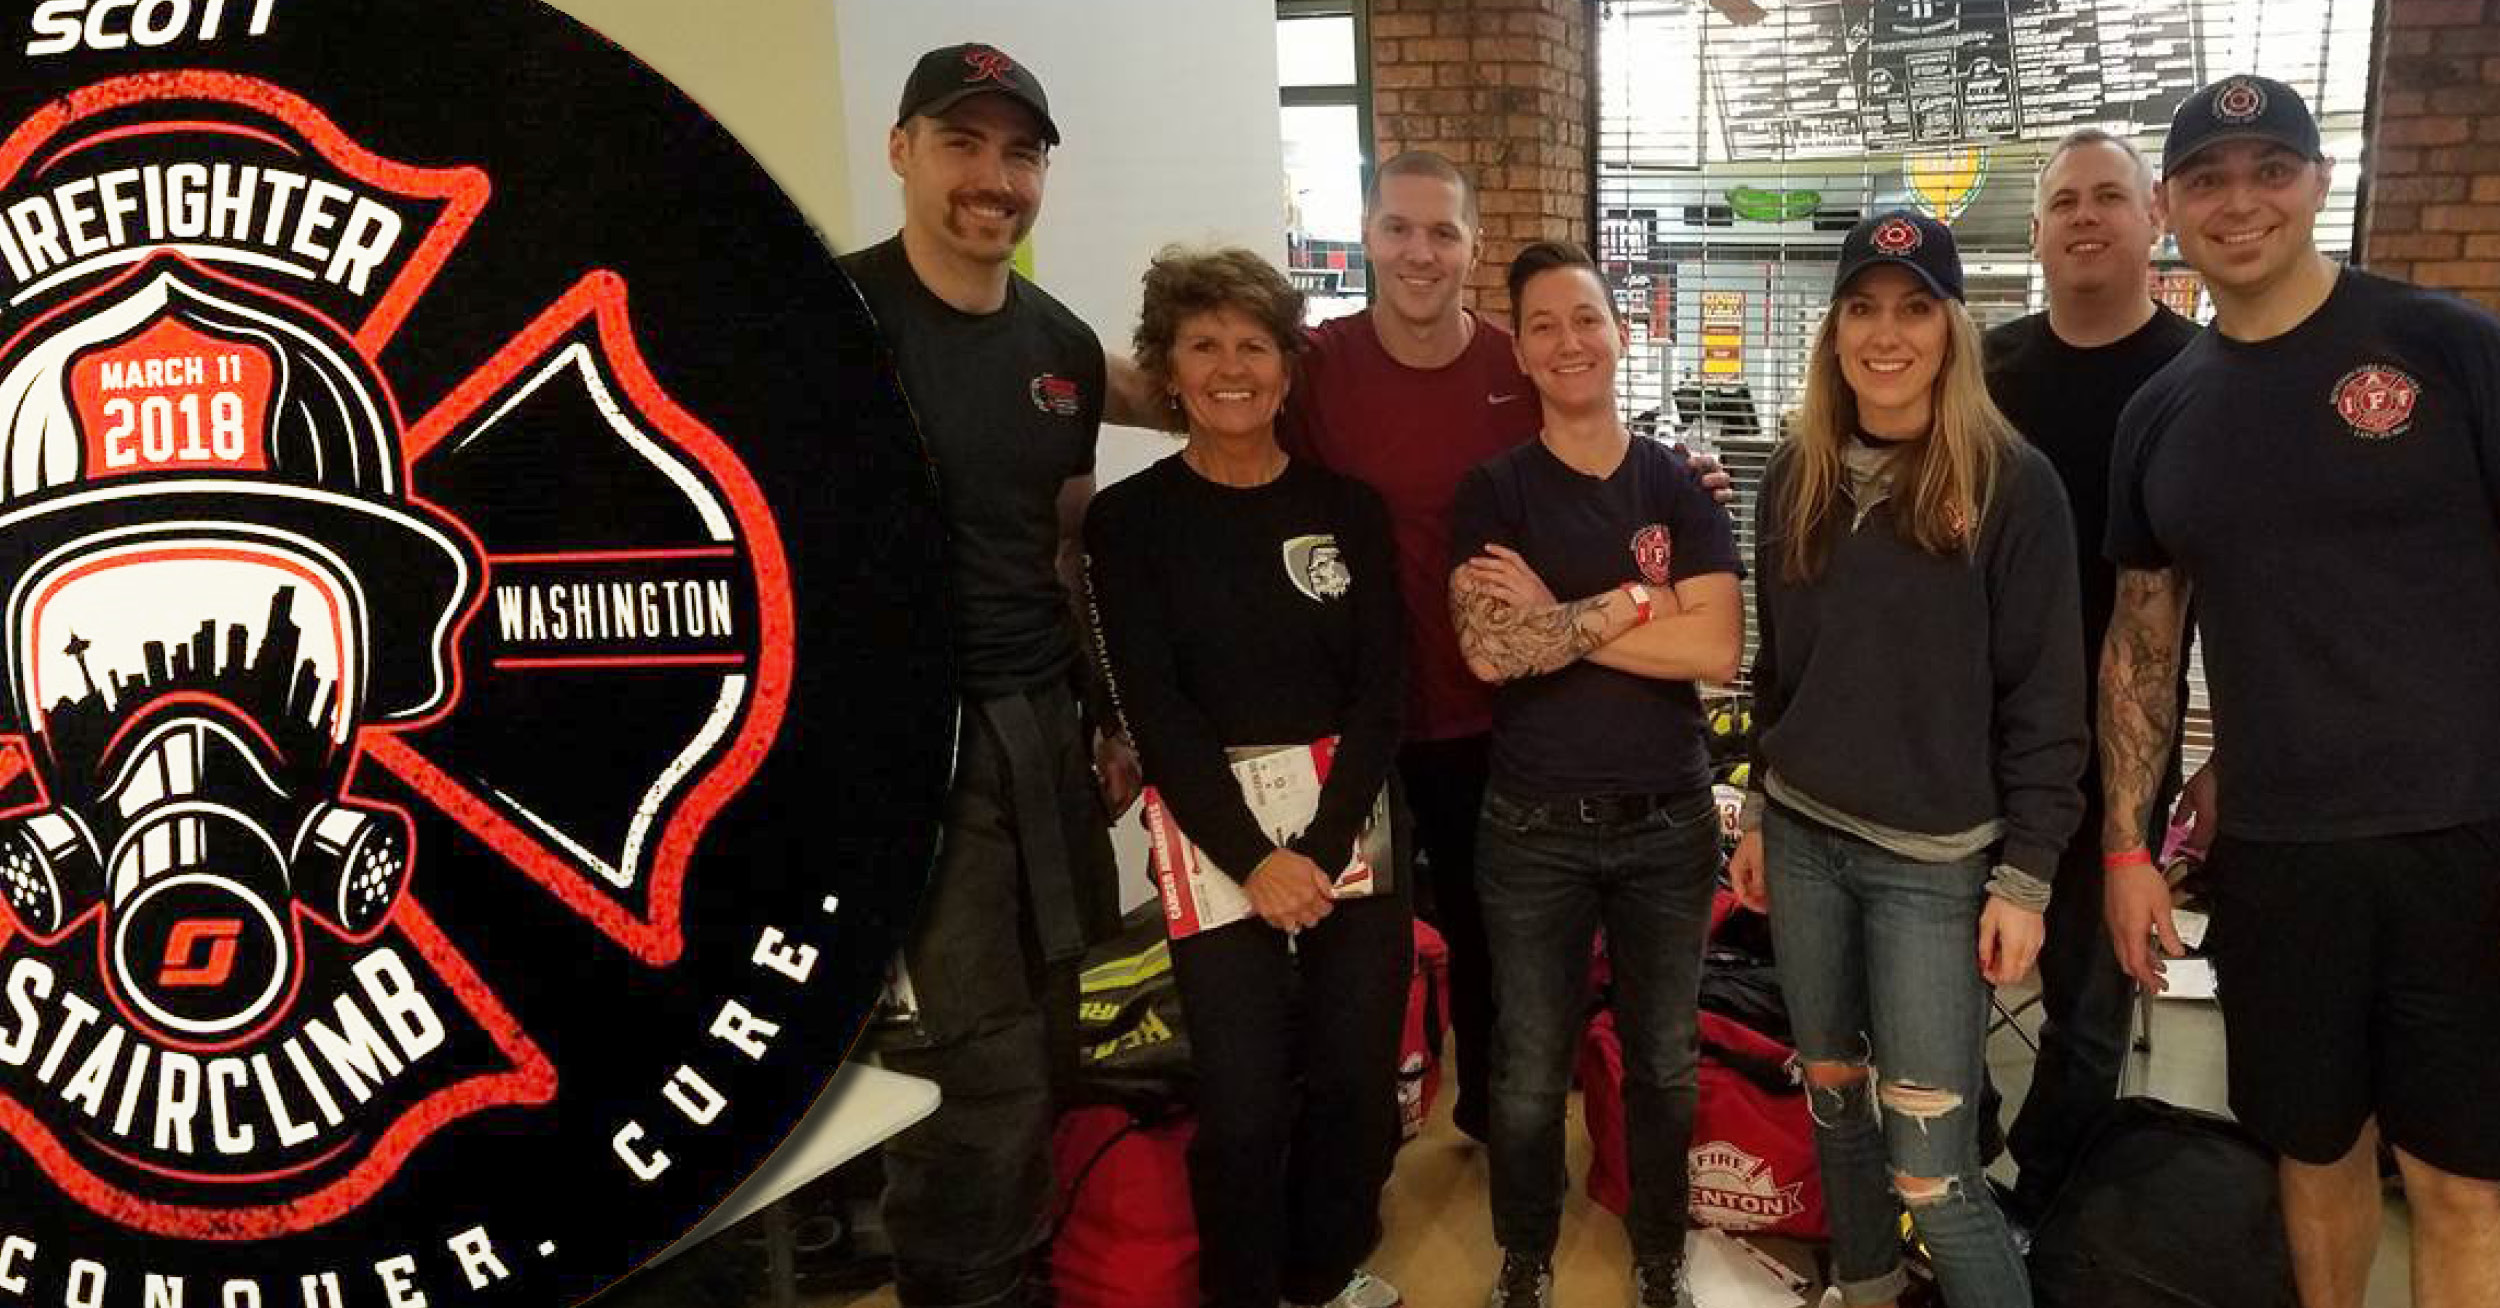 27th Annual Scott Firefighter Stairclimb